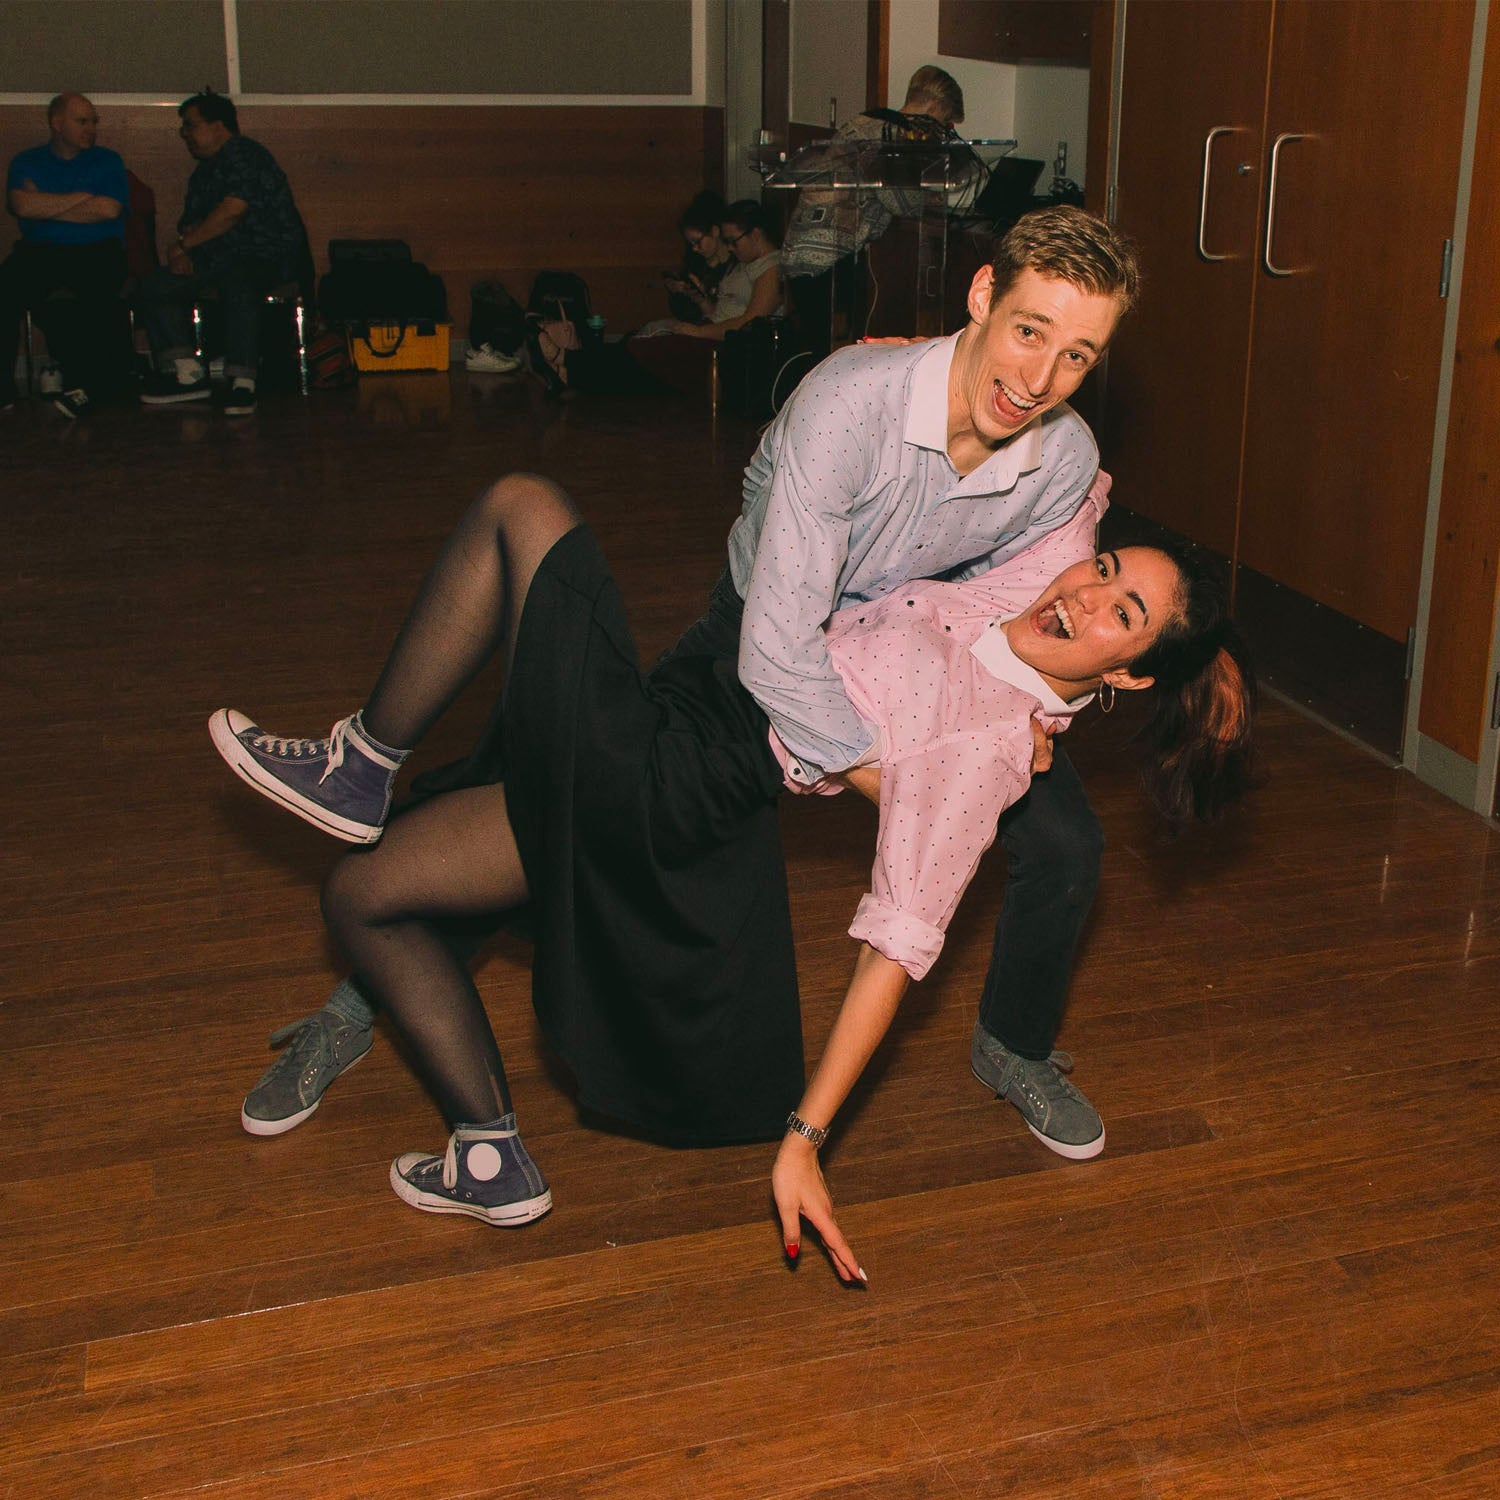 Aris Allen Swing Dance Shoes photo contest winner